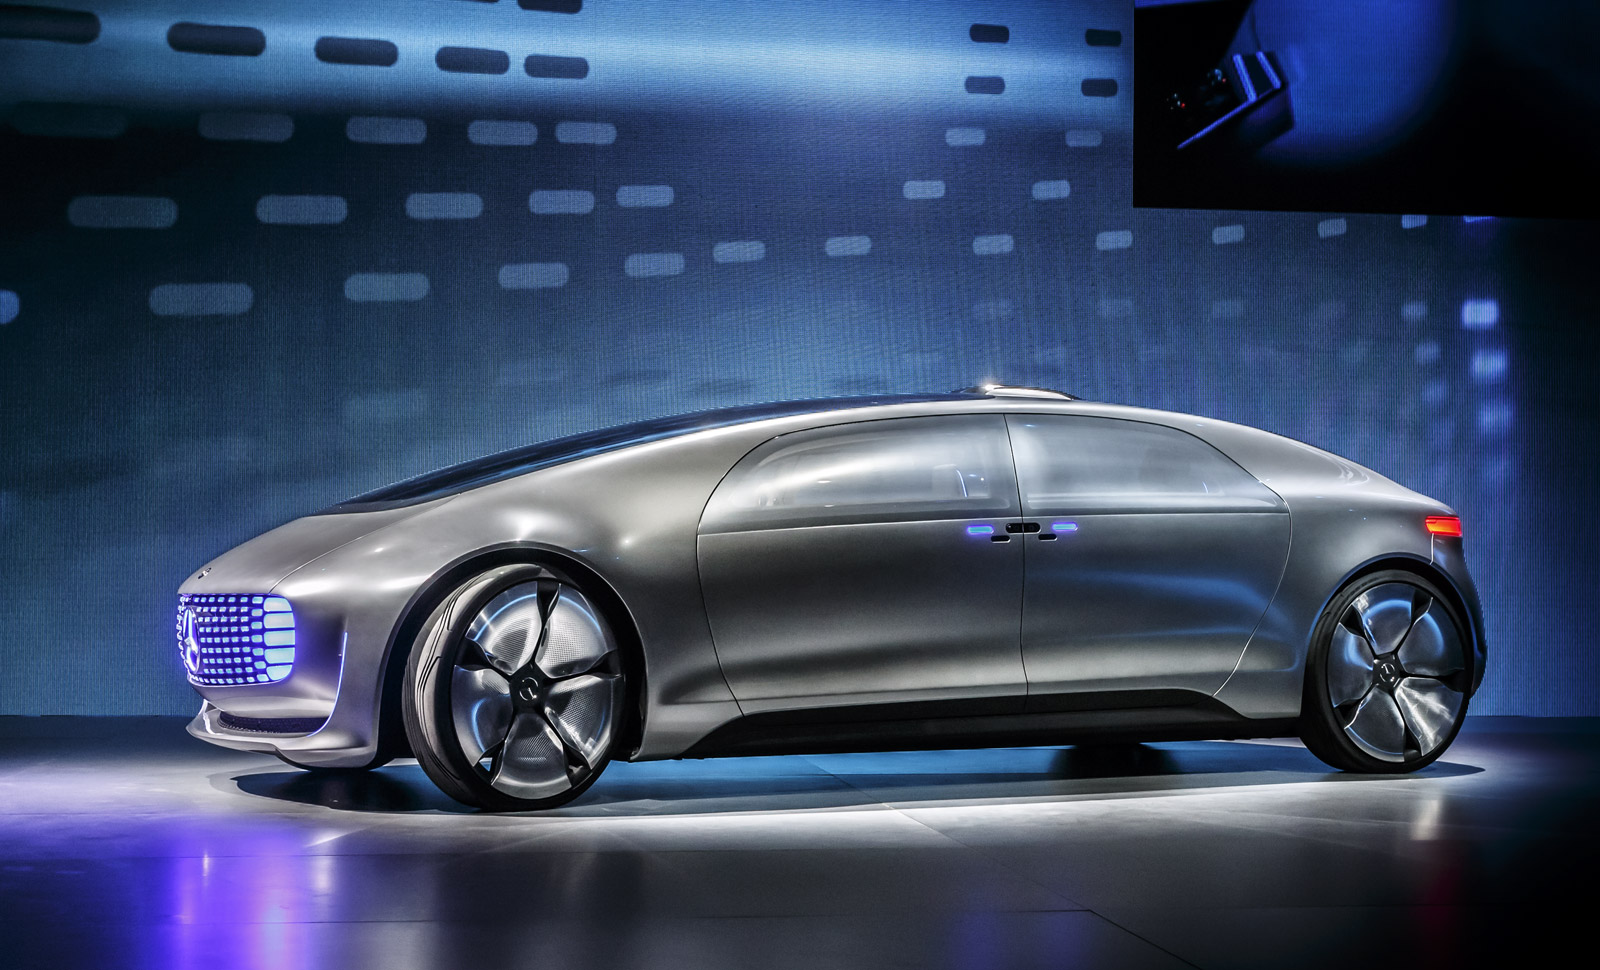 Mercedes benz f015 luxury in motion concept 2015 consumer for Mercedes benz hybrid cars